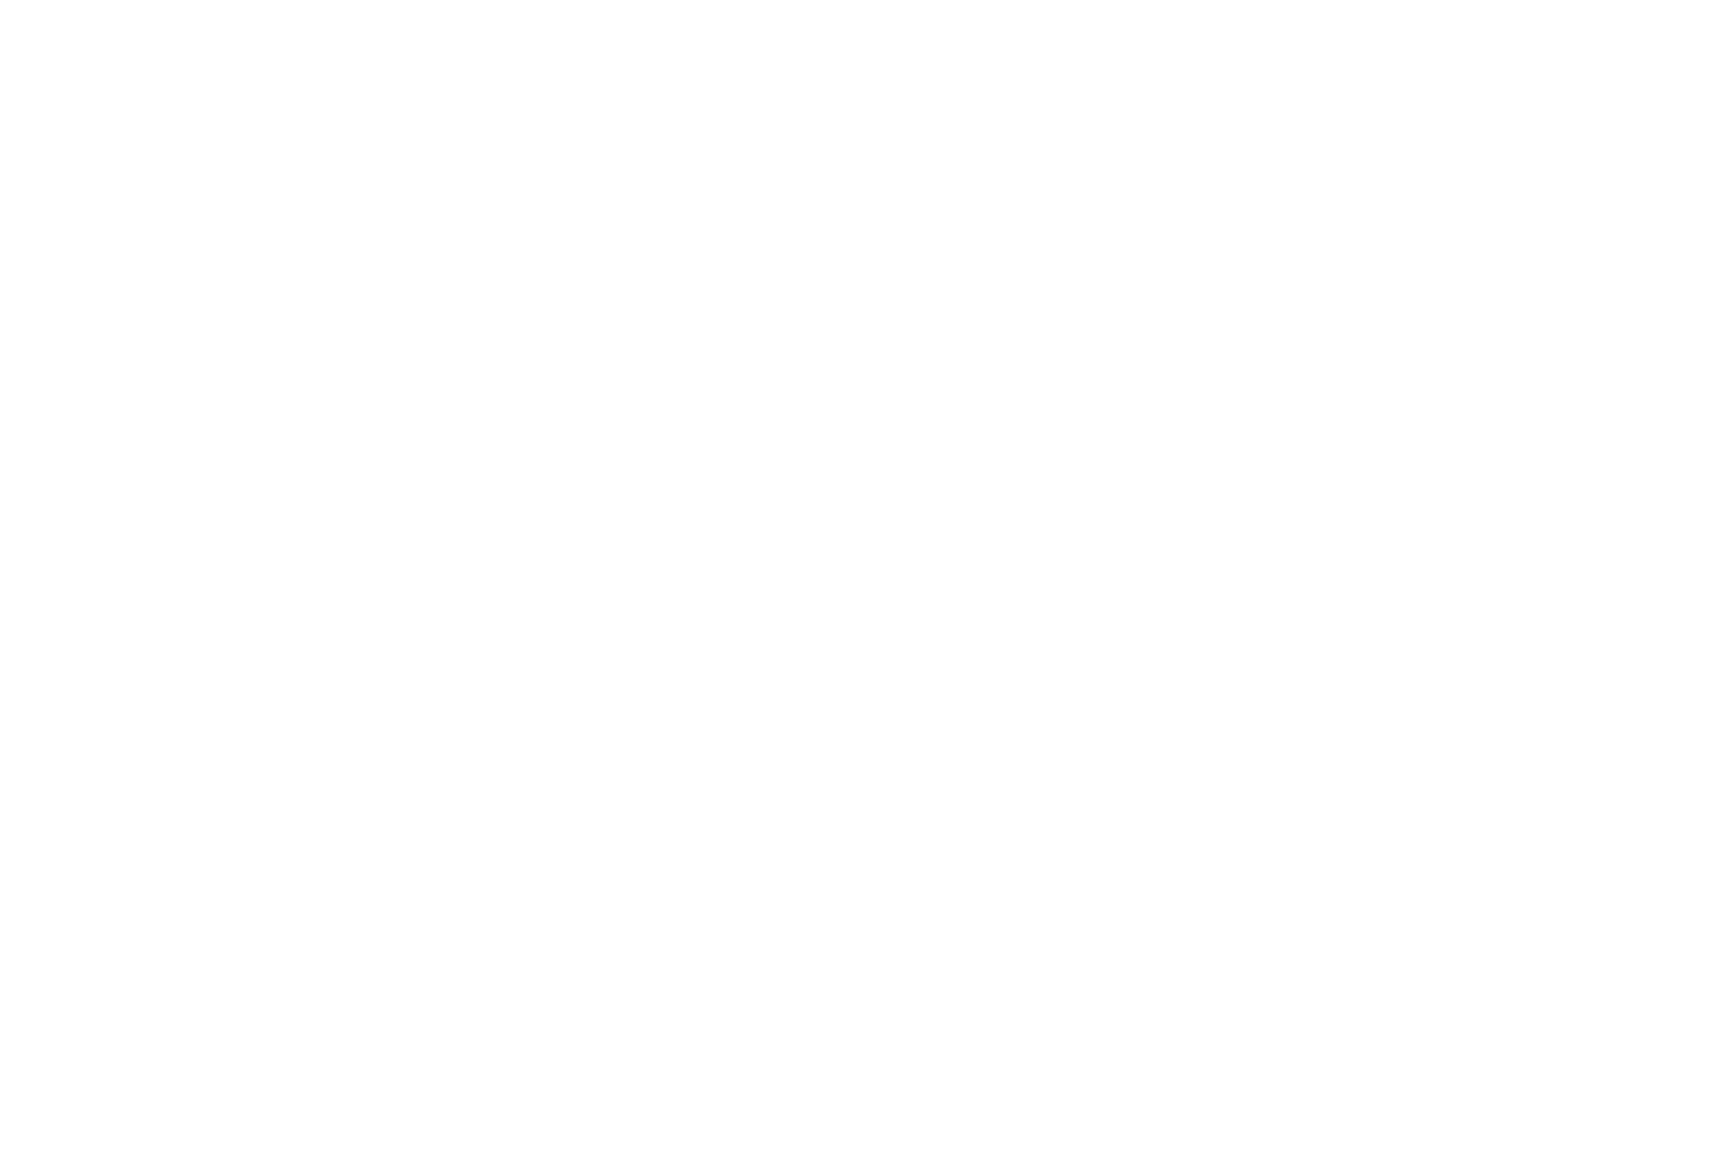 OFFICIAL SELECTION - New Media Film Festival - 2020